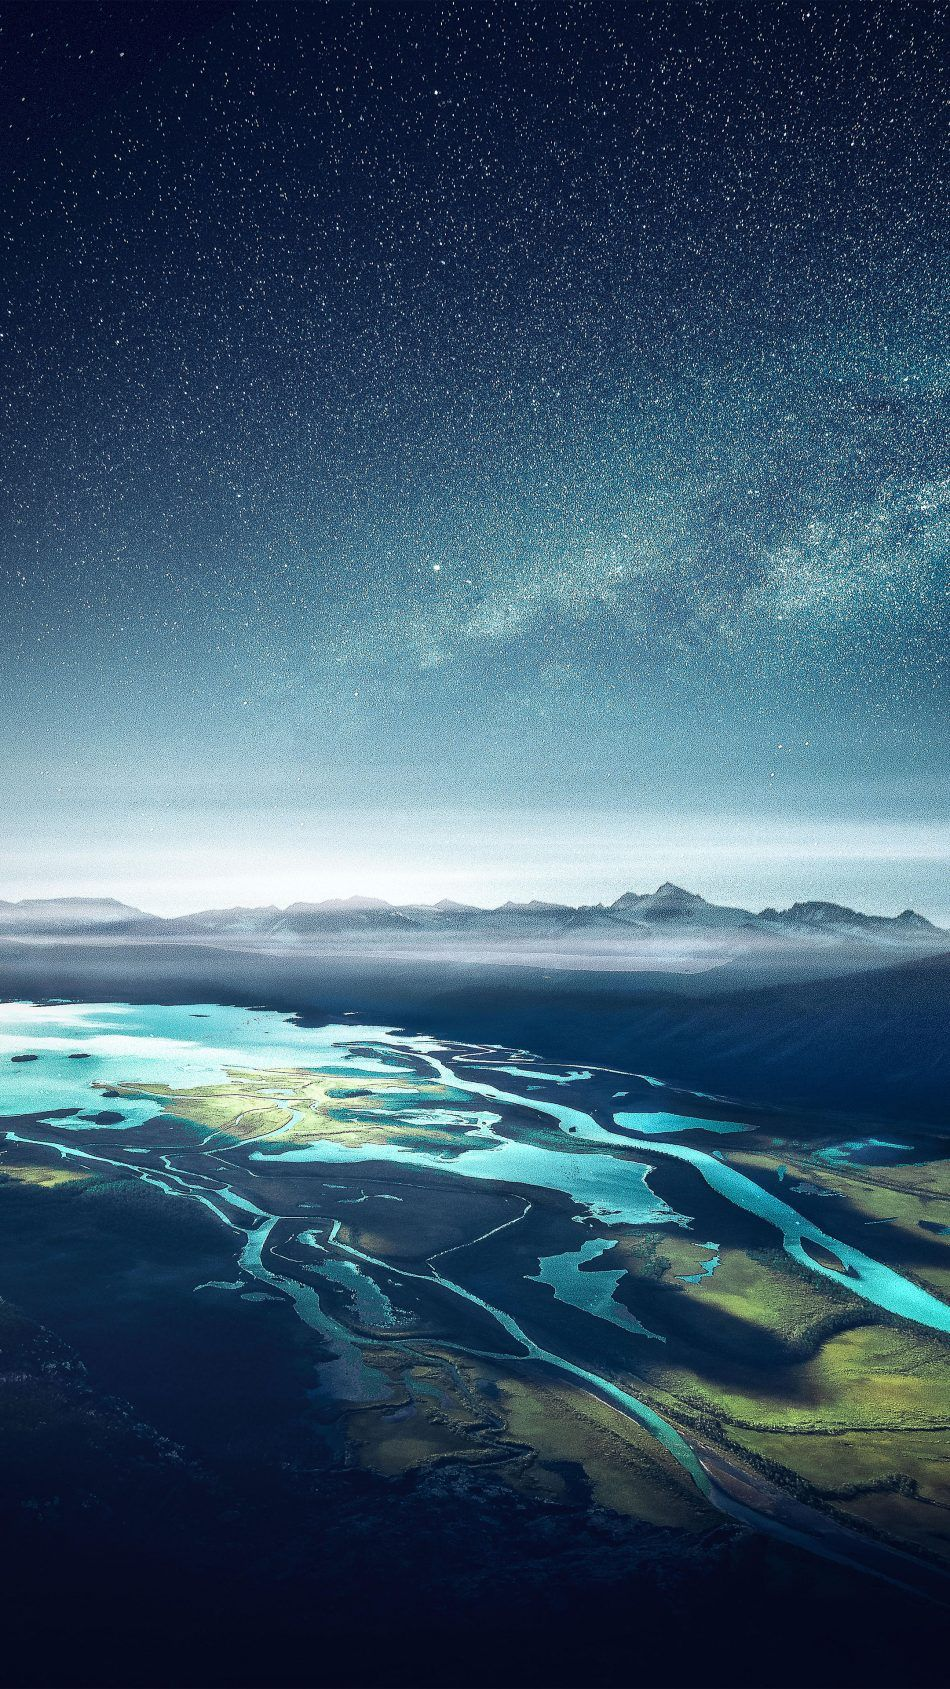 Mountain Range River Landscape Starry Sky 4k Ultra Hd Mobile Wallpaper Iphone Wallpaper Sky Hd Nature Wallpapers Nature Wallpaper